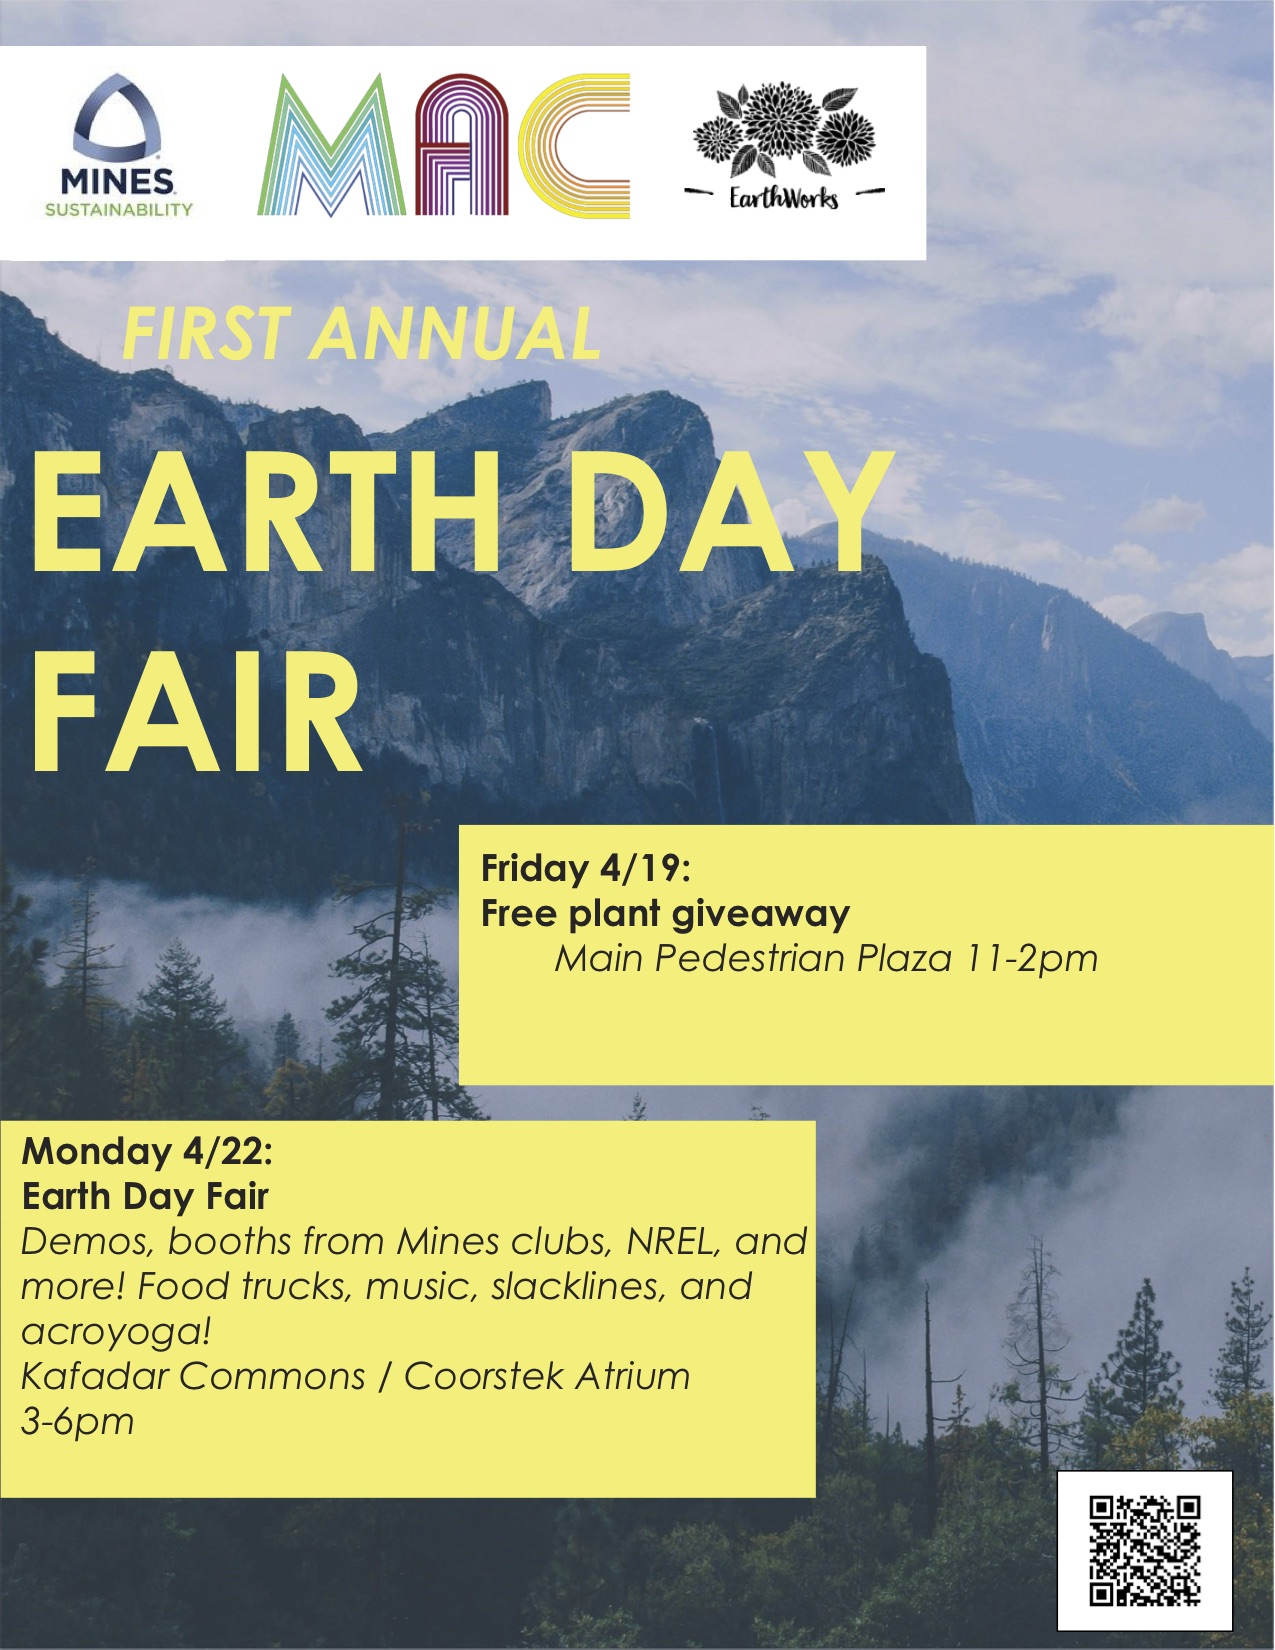 Earth Day Fair to showcase sustainability at Mines | Colorado School